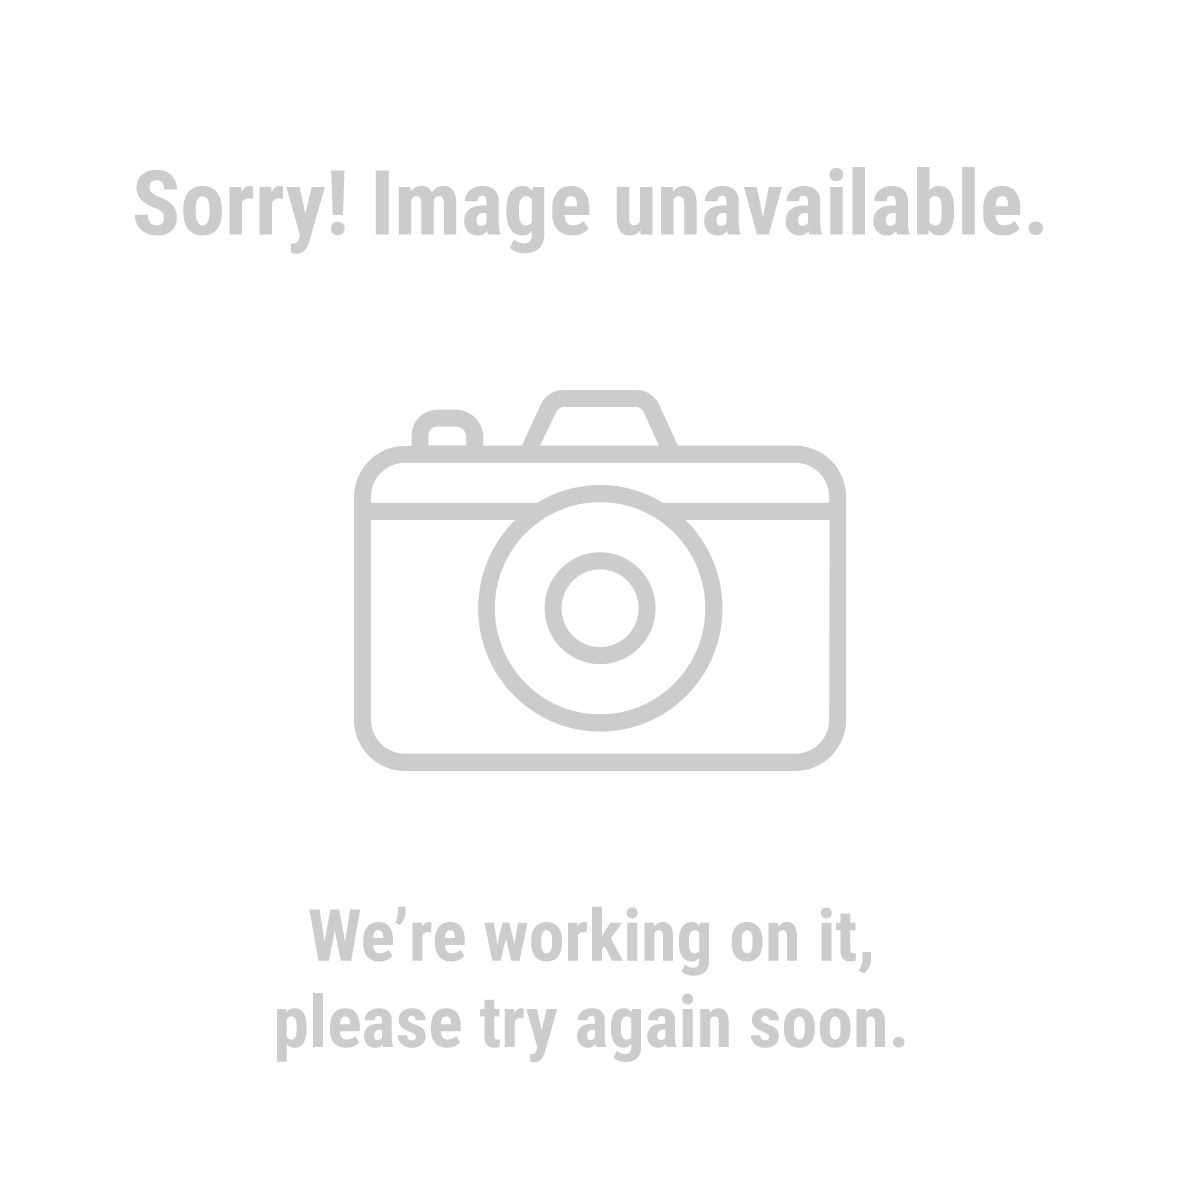 125 PSI Air Flow Regulator with Gauge